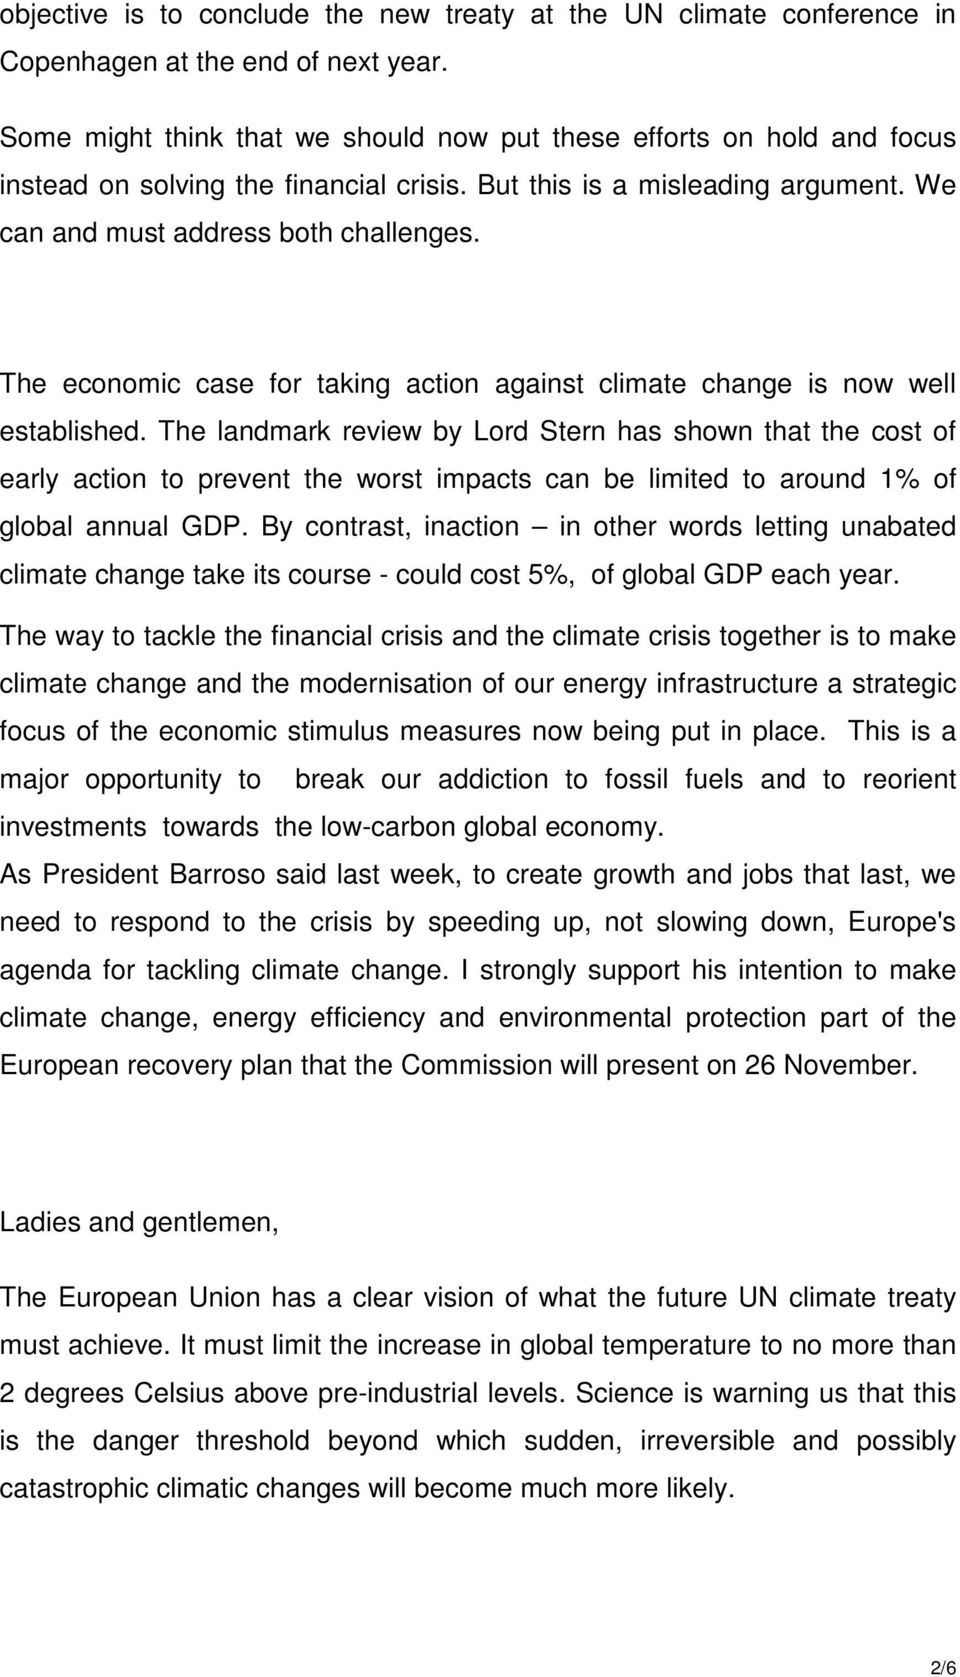 The economic case for taking action against climate change is now well established.